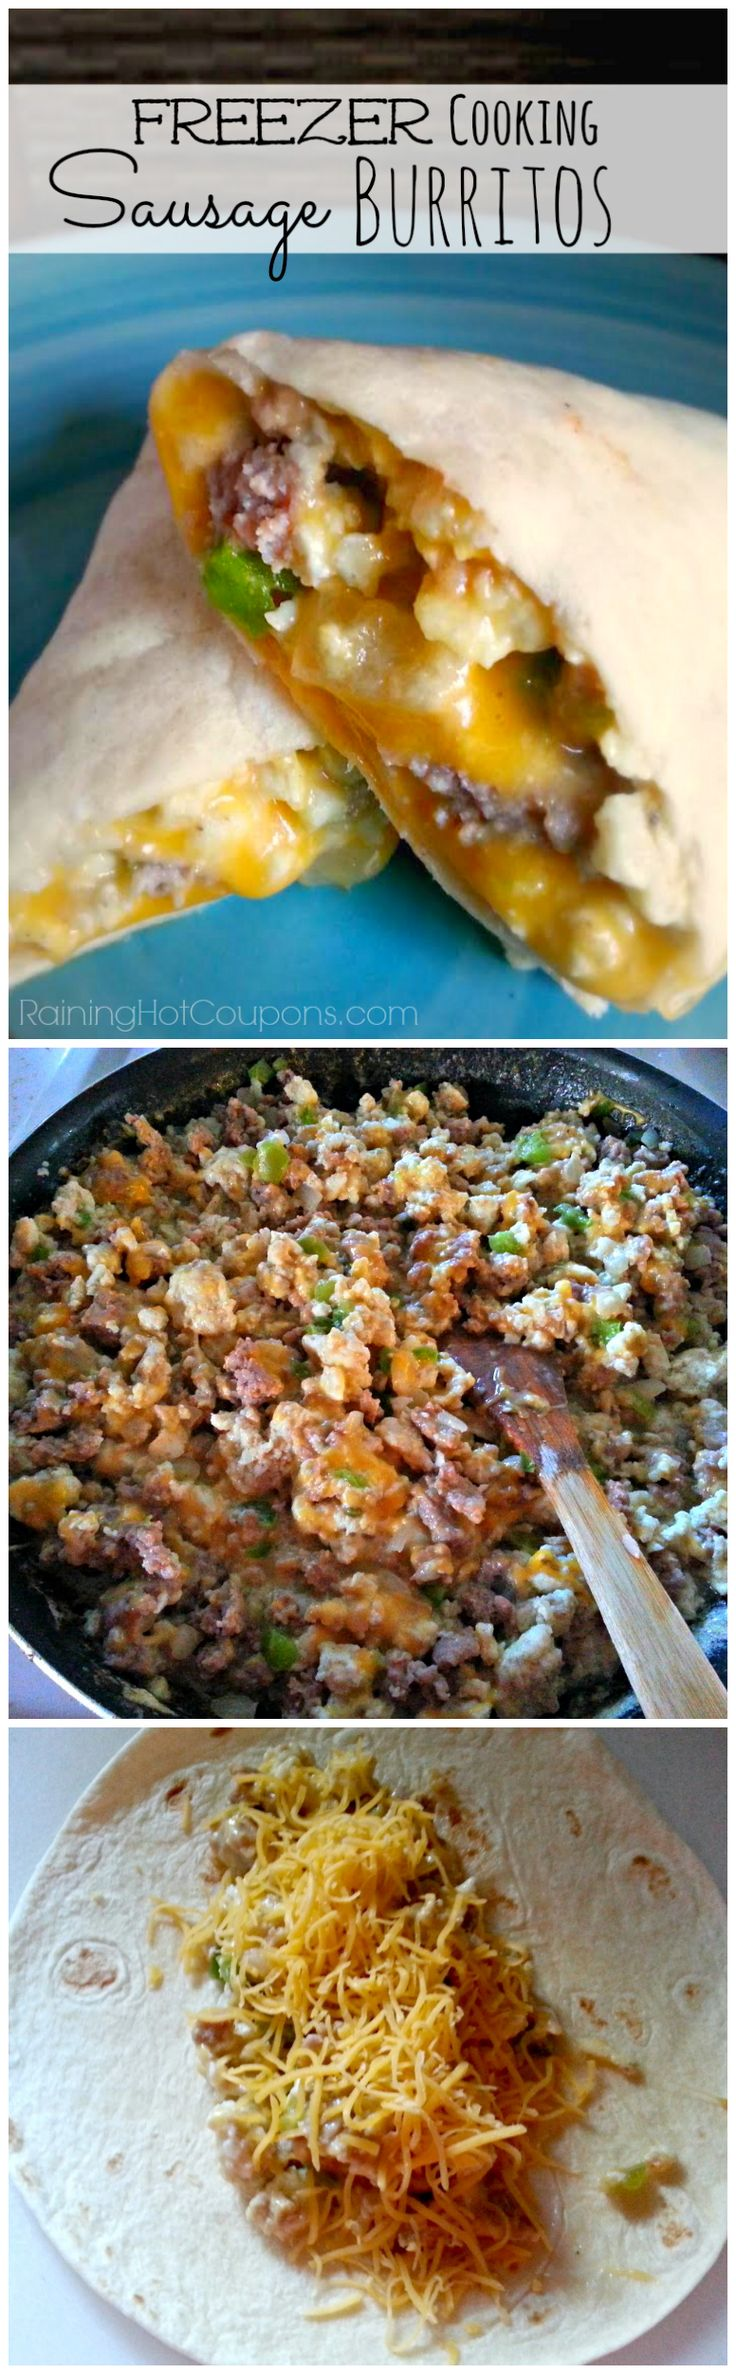 Easy Sausage Breakfast Burritos (Freezer Cooking Recipe) - These were so easy and have really come in handy for quick breakfasts! I used wheat tortillas and whole eggs instead of egg whites. I also used pork sausage instead of turkey. YUM!!!!